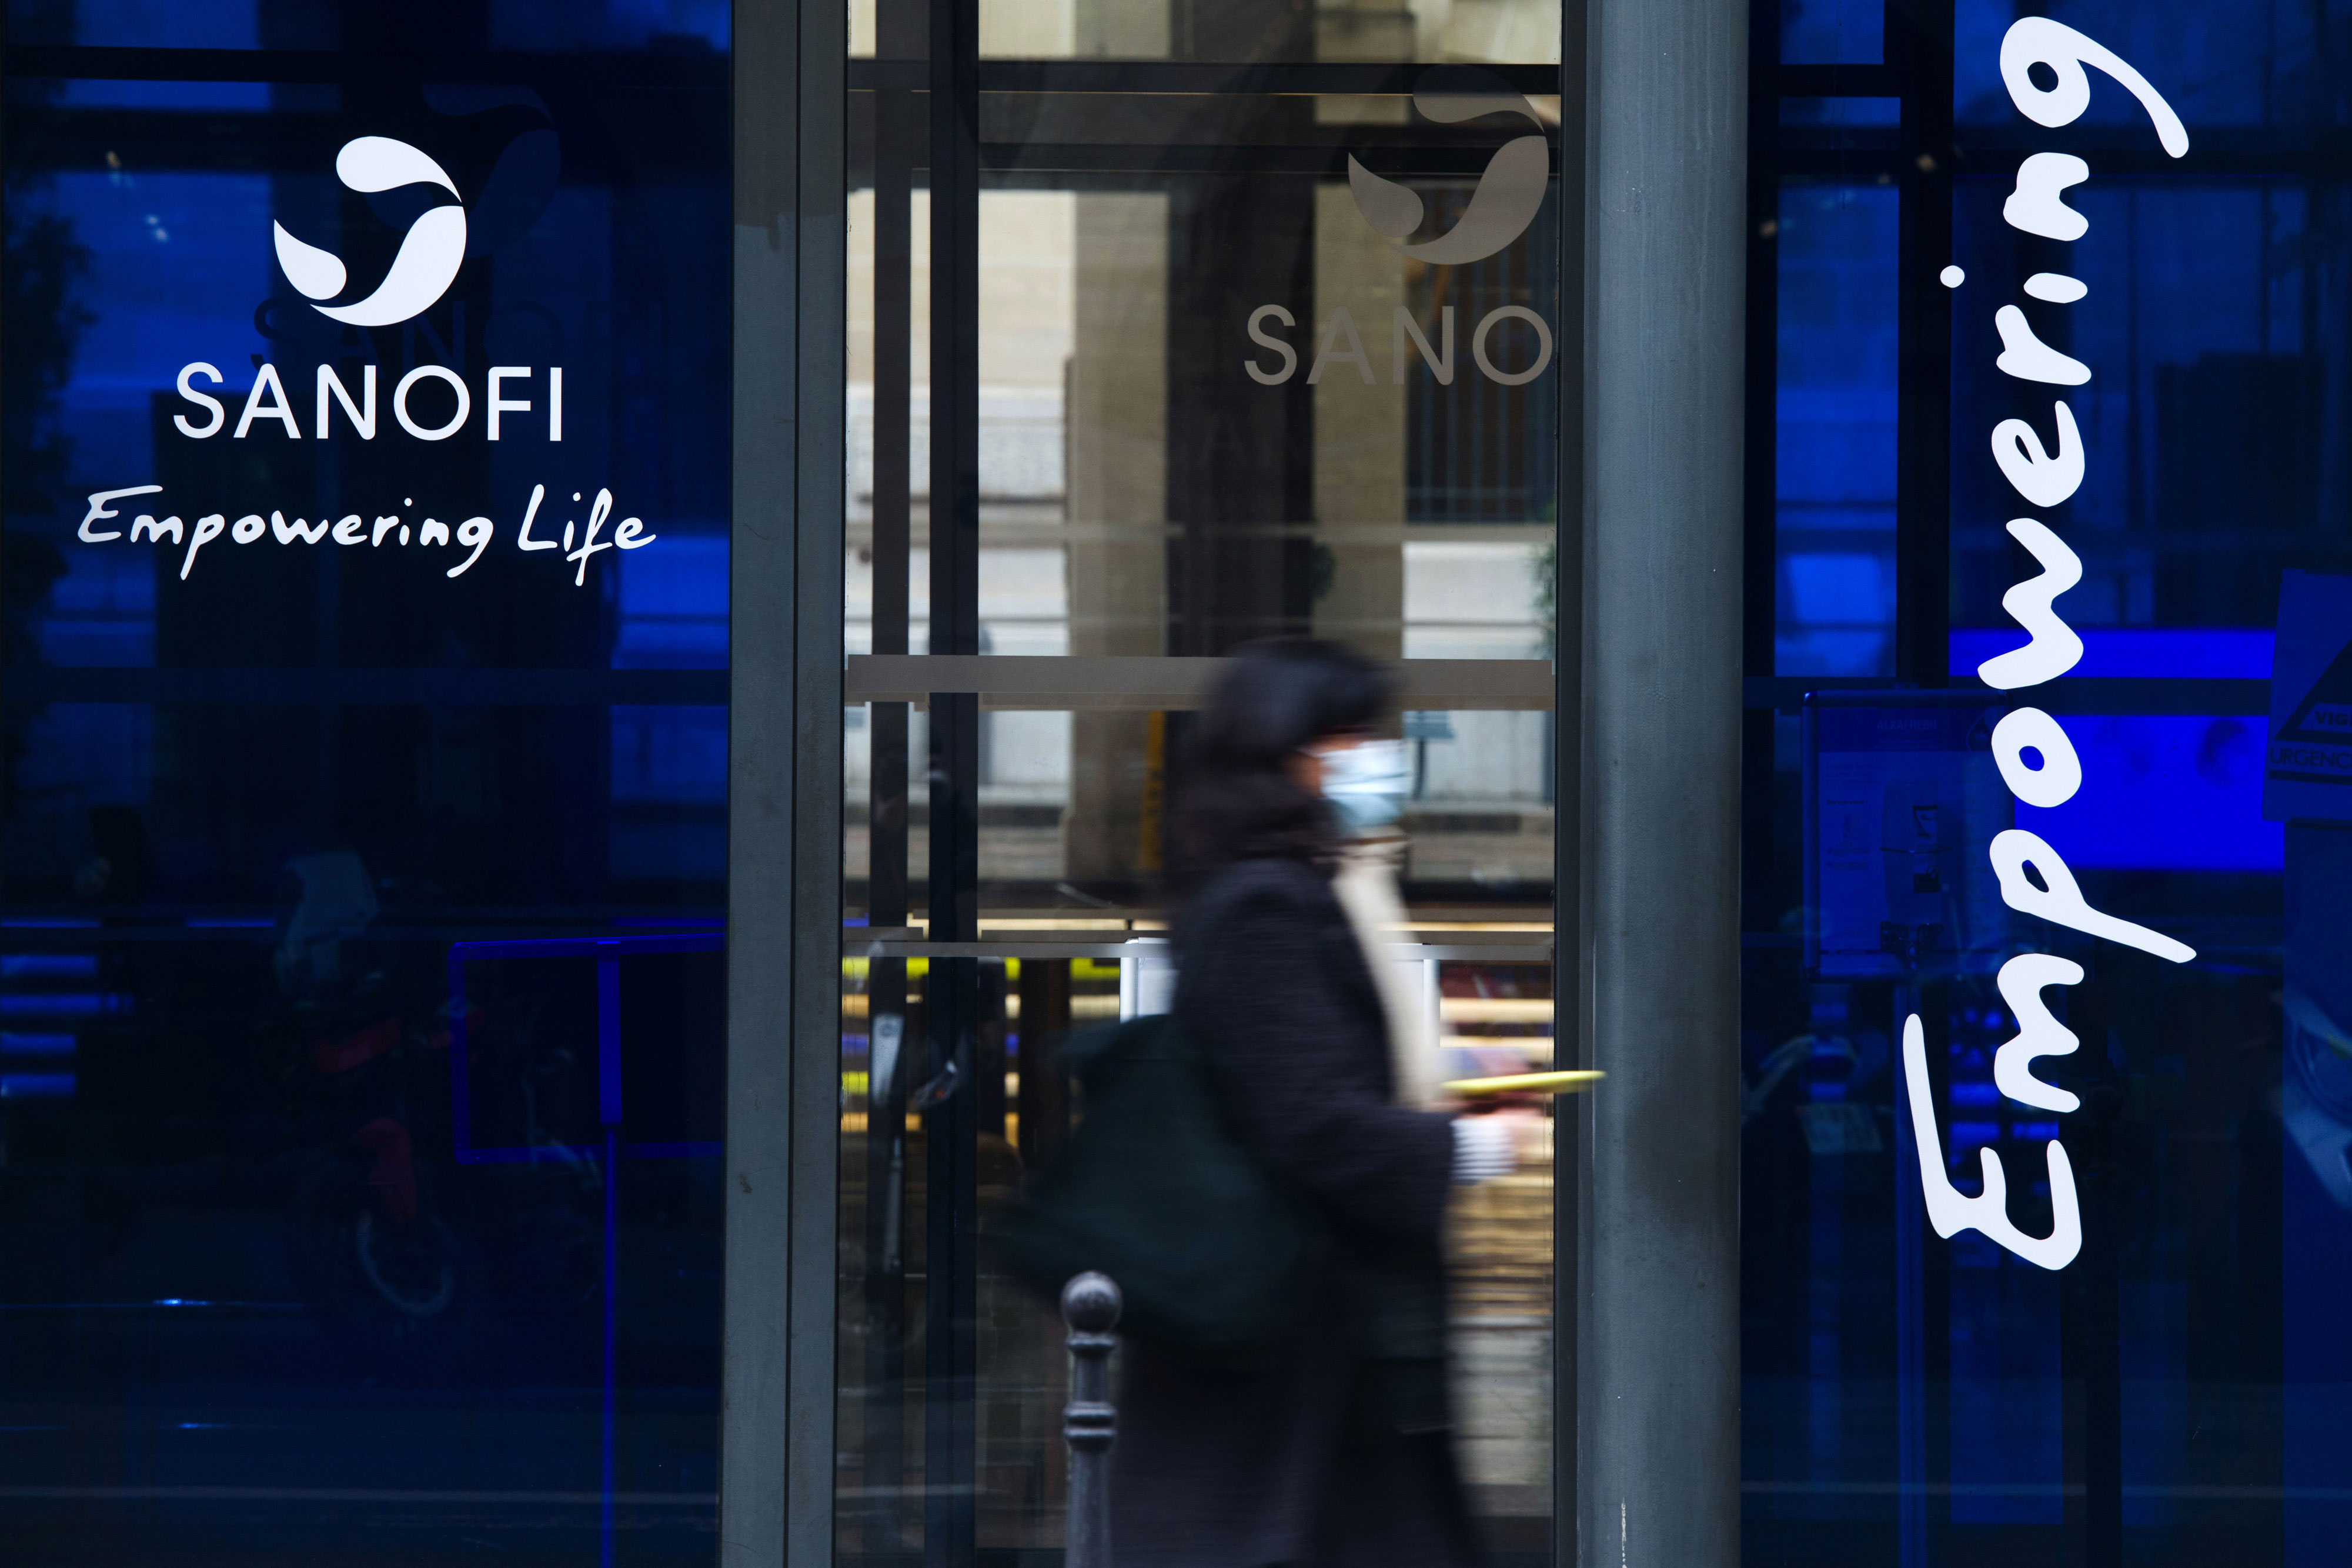 A person passes the Sanofi office in Paris on January 28.